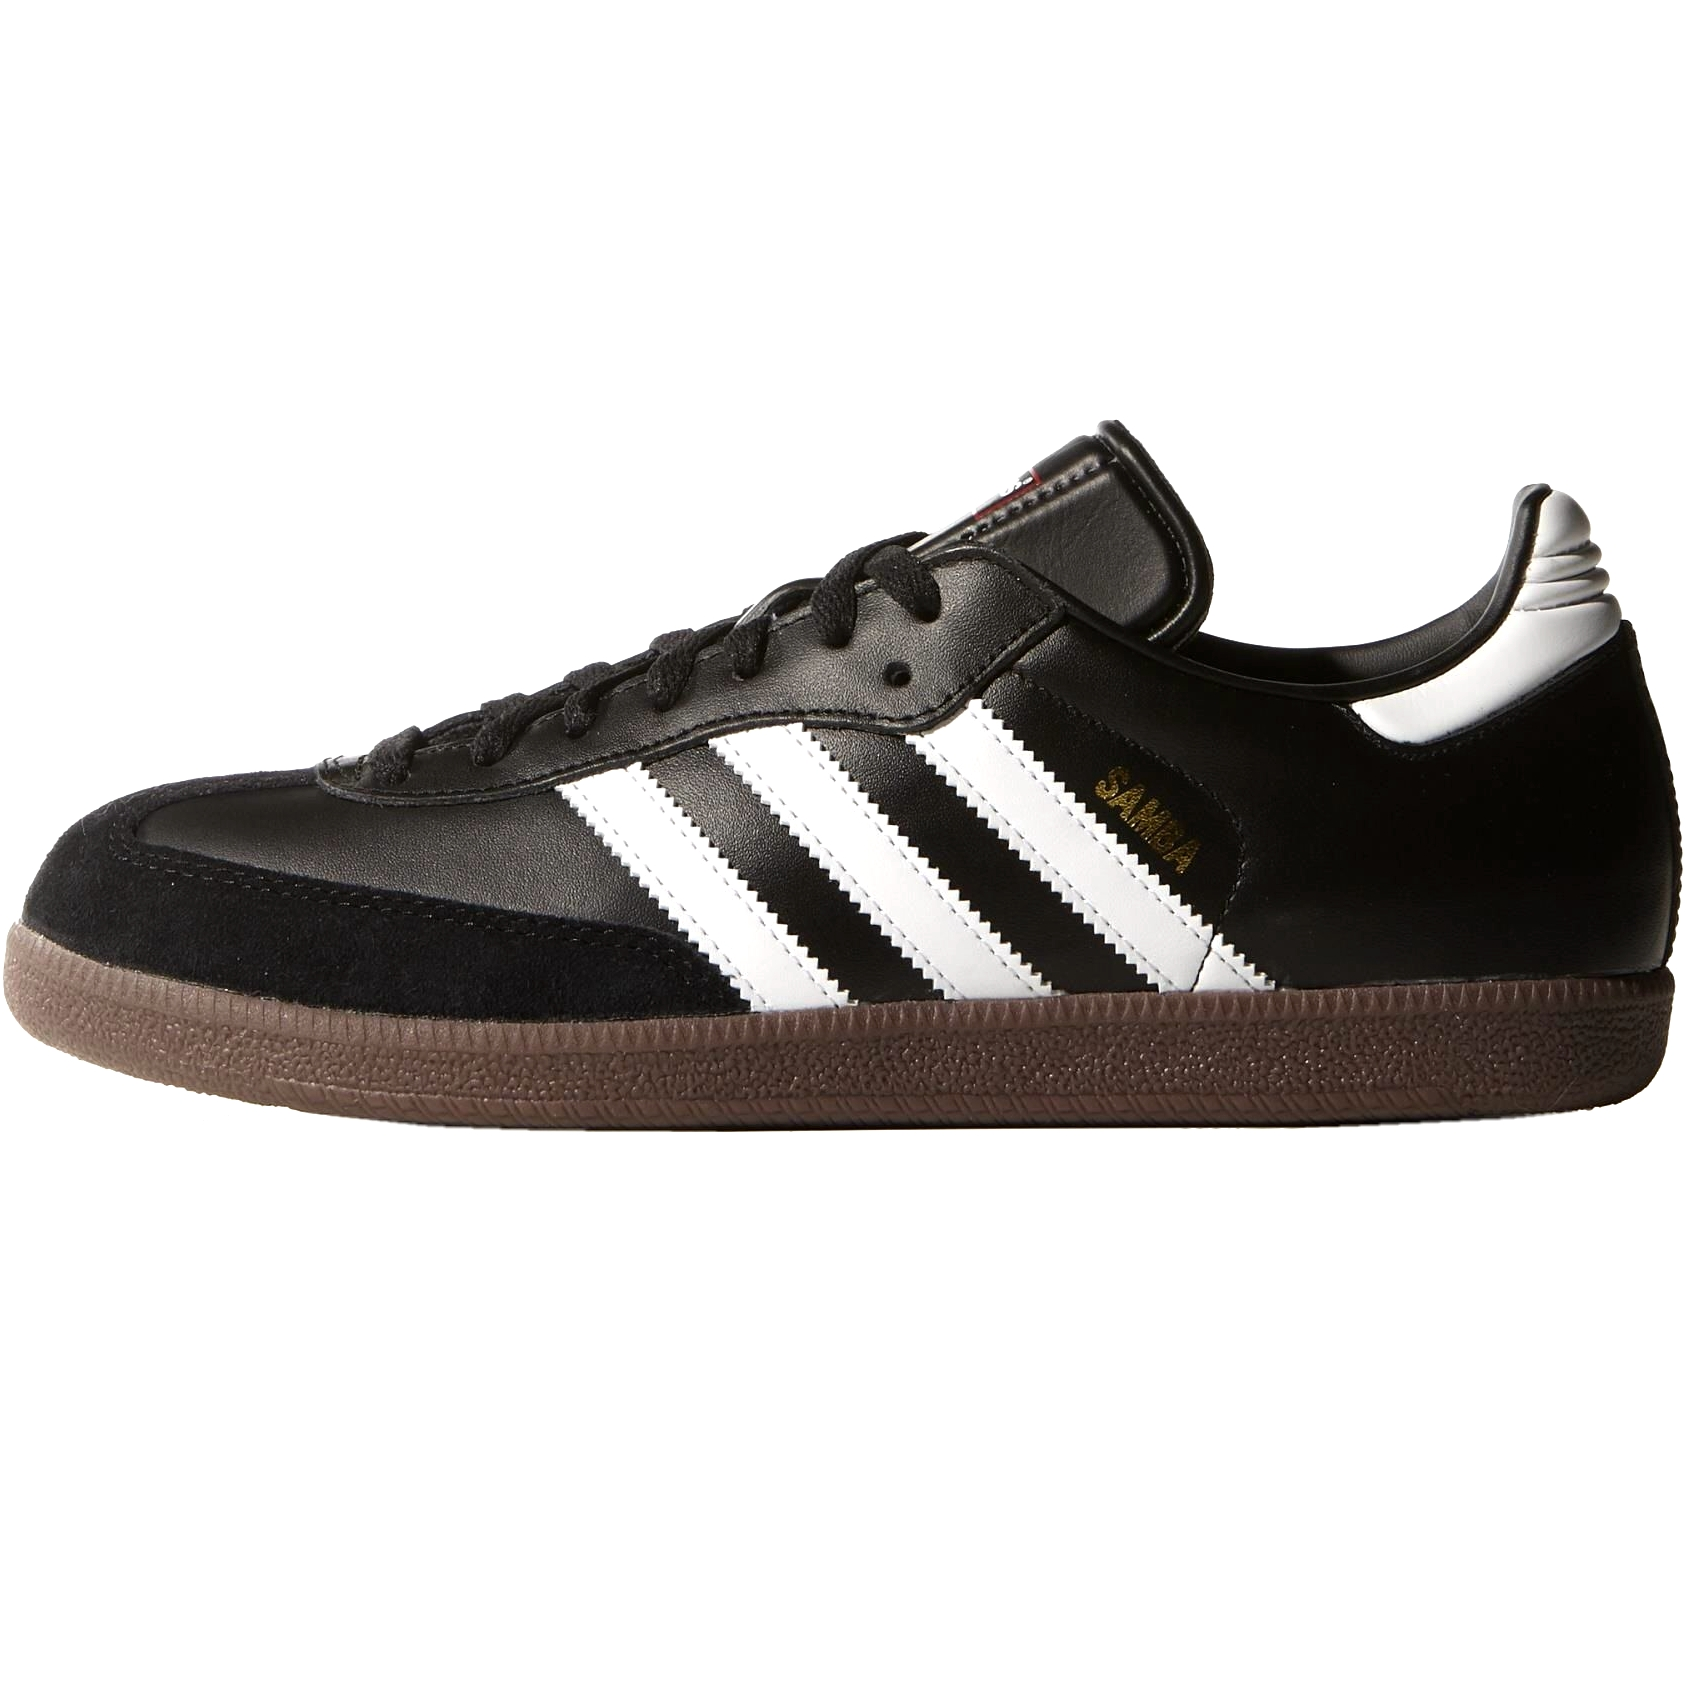 adidas schuhe samba classic unisex women 39 s men 39 s sneaker trainer black white ebay. Black Bedroom Furniture Sets. Home Design Ideas